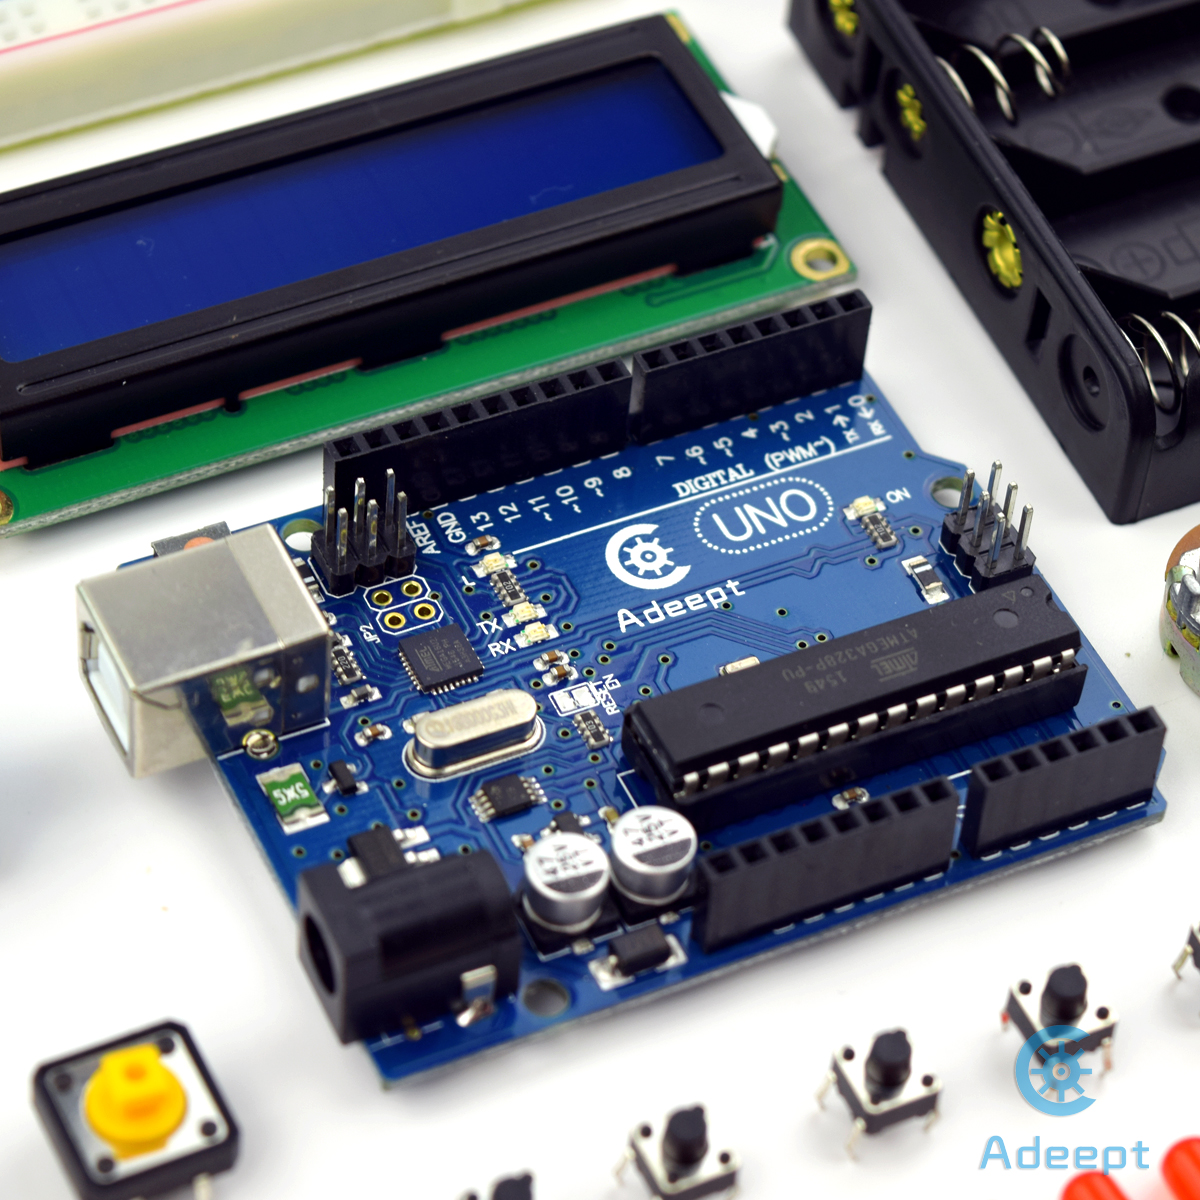 Adeept Ultrasonic Distance Sensor Starter Kit For Arduino Uno R3 Tutorial Lesson 3 Breadboards And Leds With Code